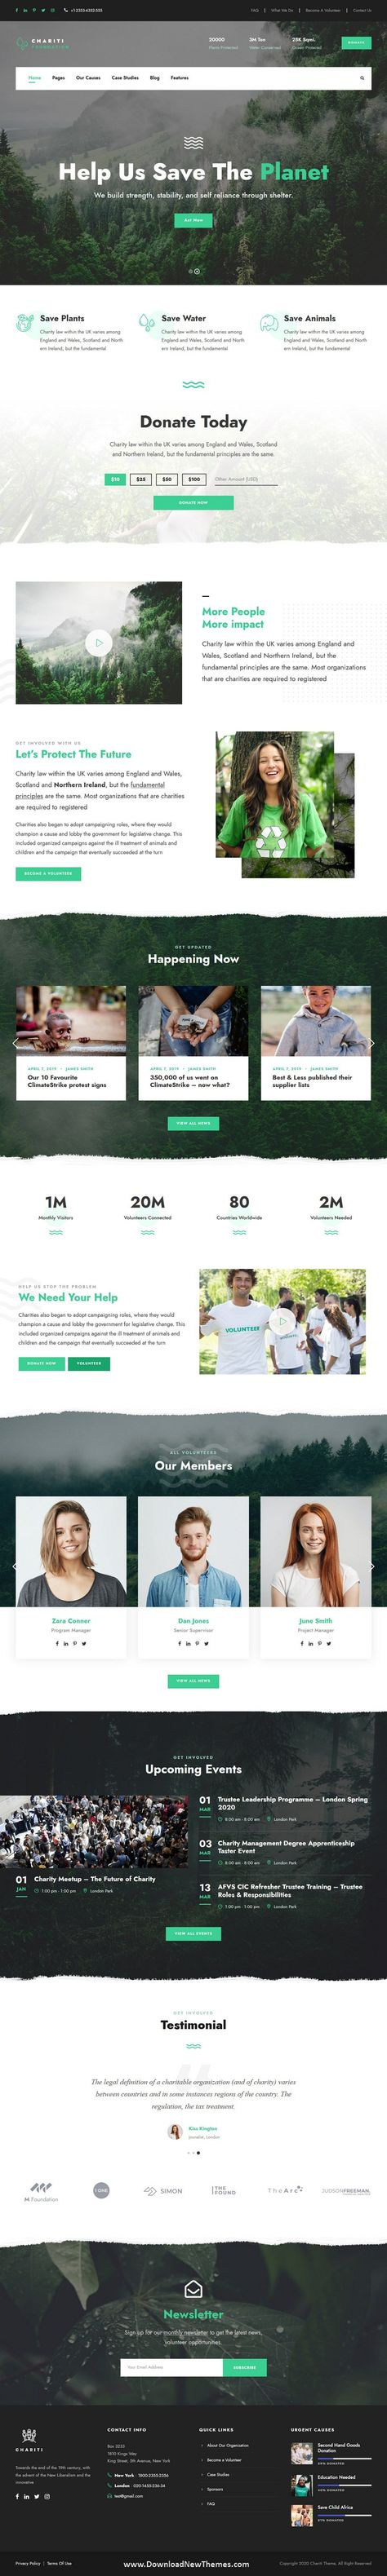 Charity & Donation Website Template